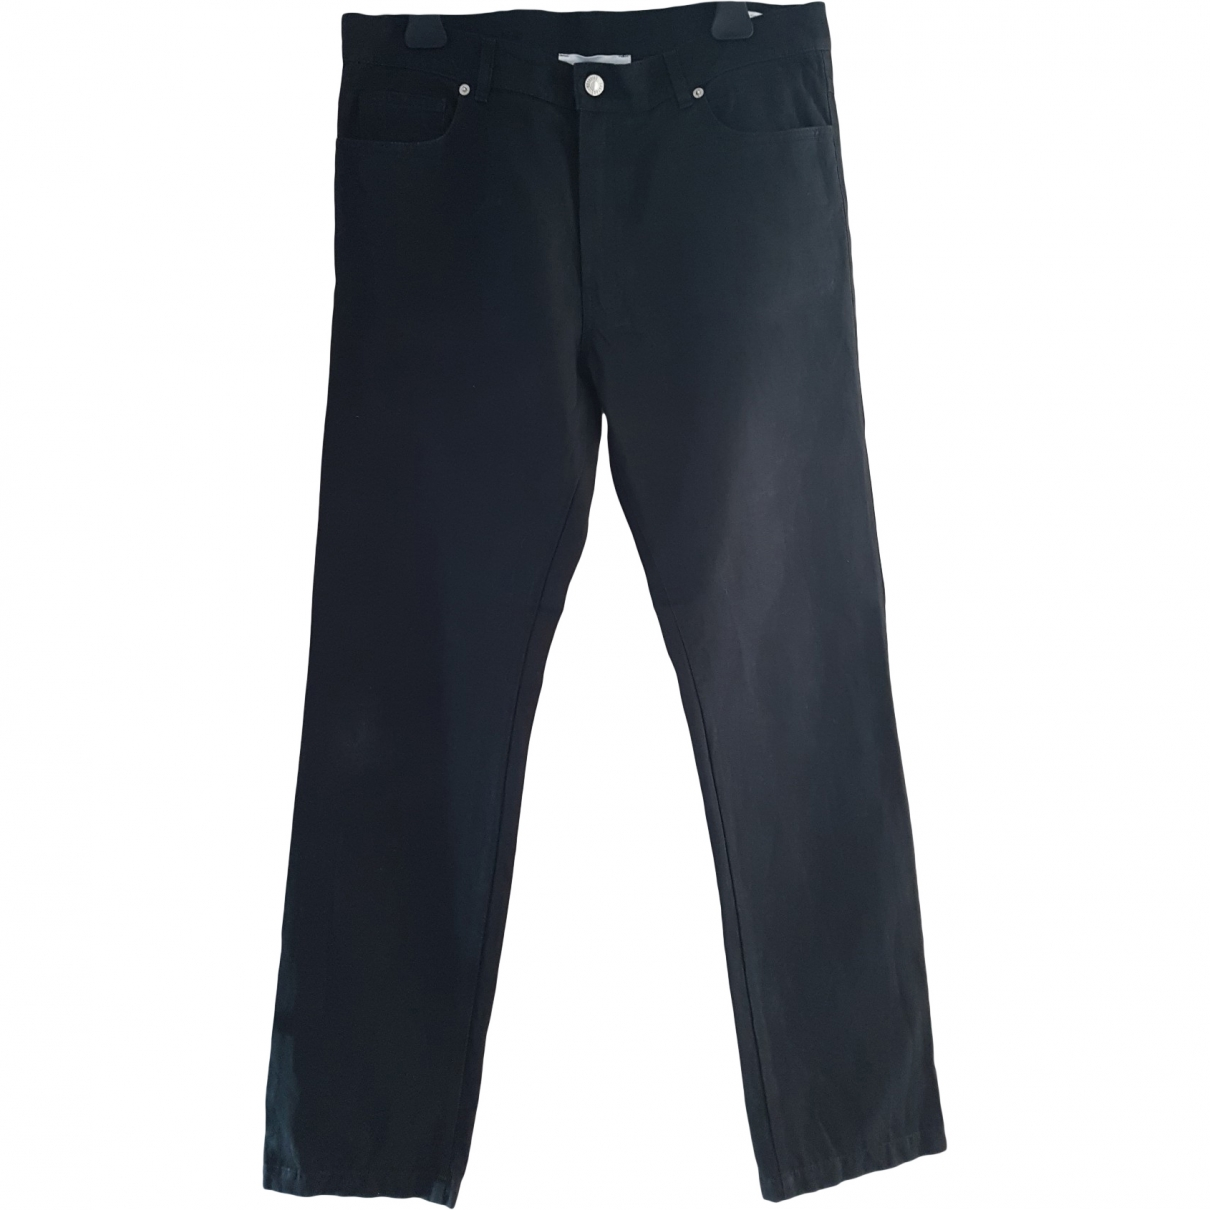 Moschino \N Black Cotton Trousers for Men 50 IT